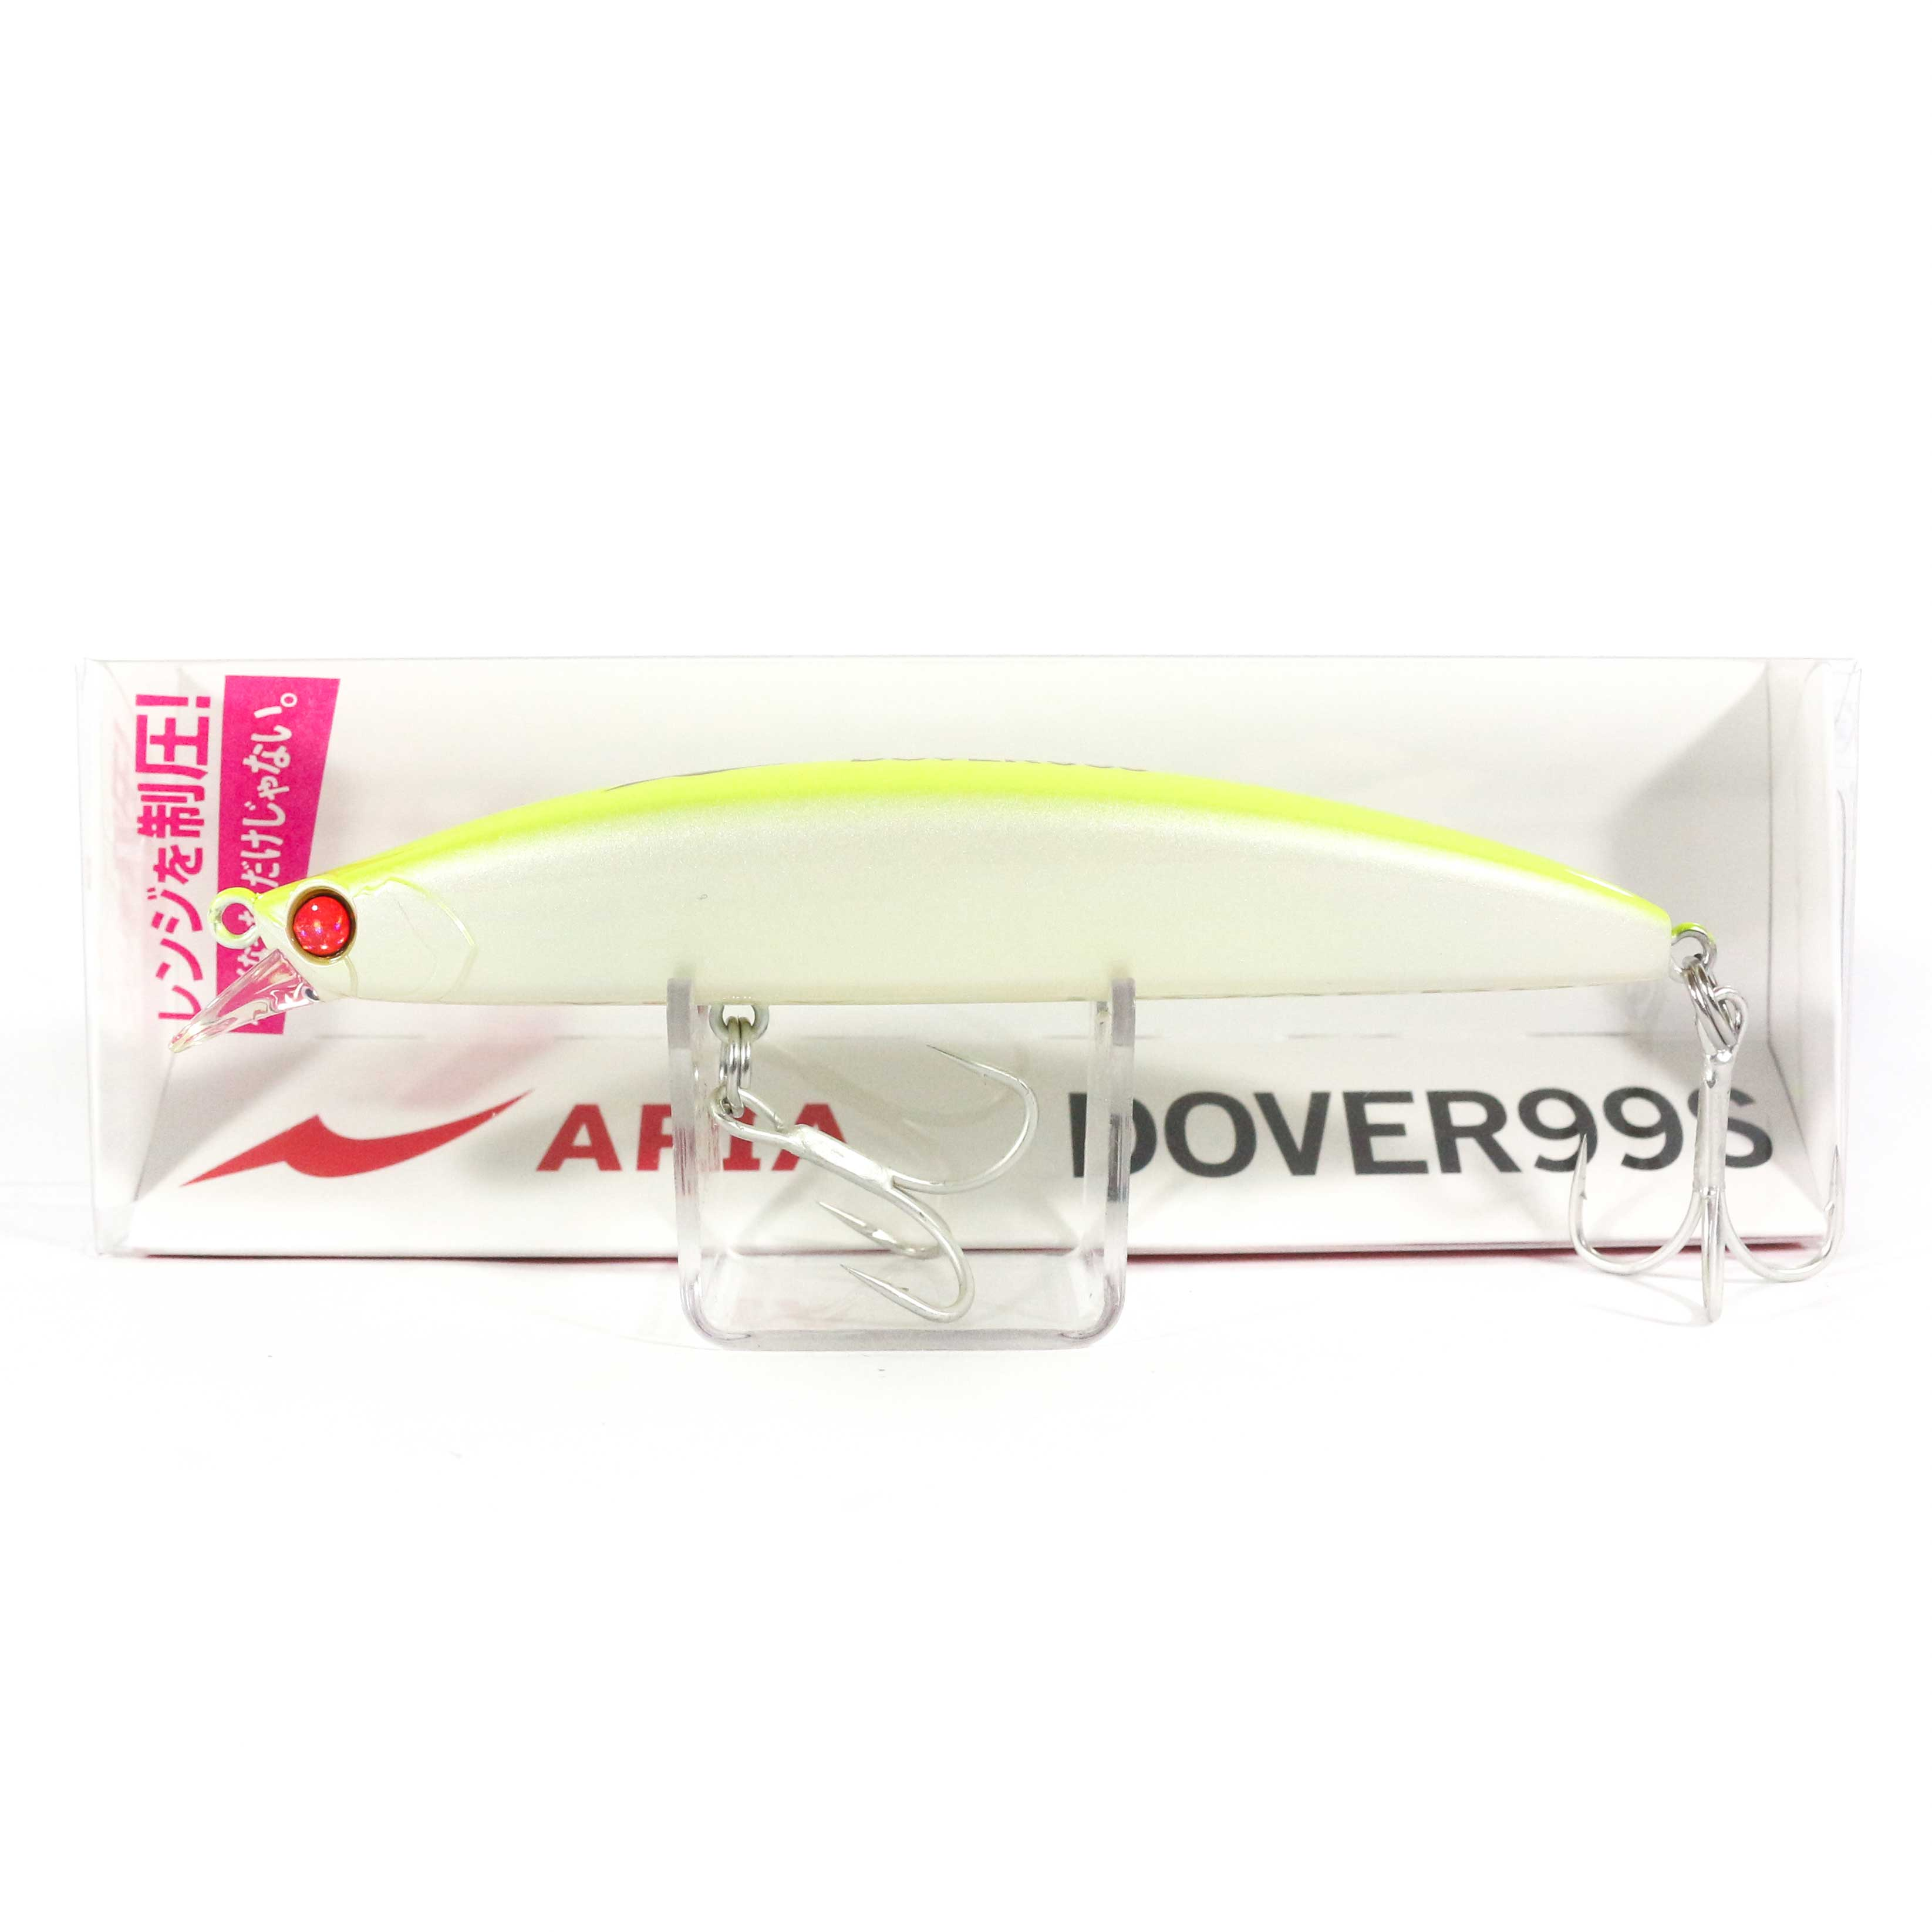 Apia Dover 99S Sinking Lure 03 (1703)